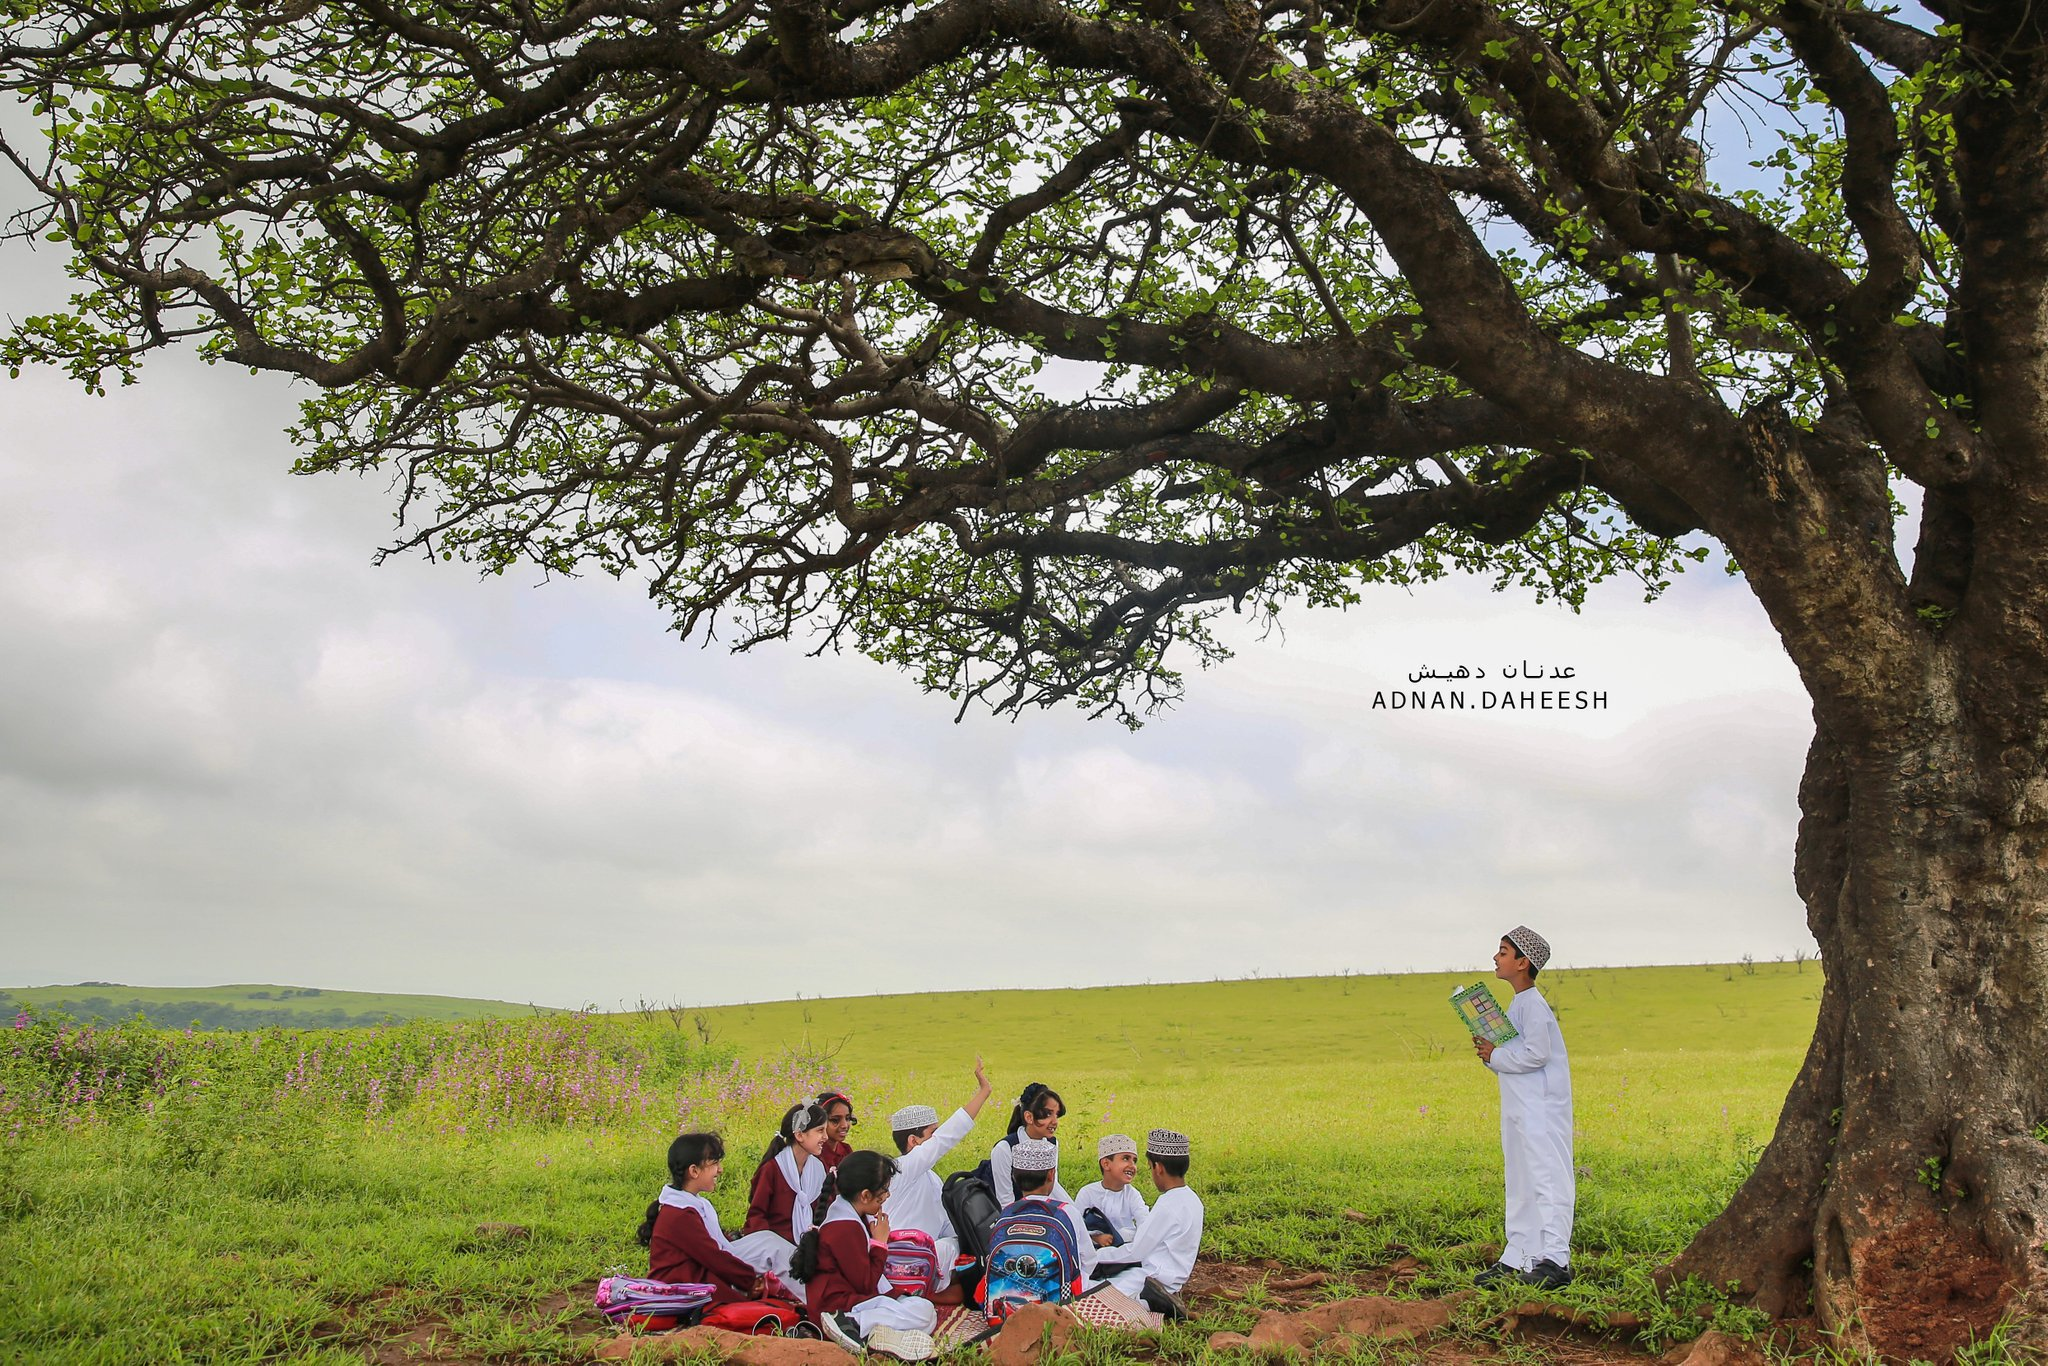 In pictures: Students of mountainous areas in Dhofar back to school